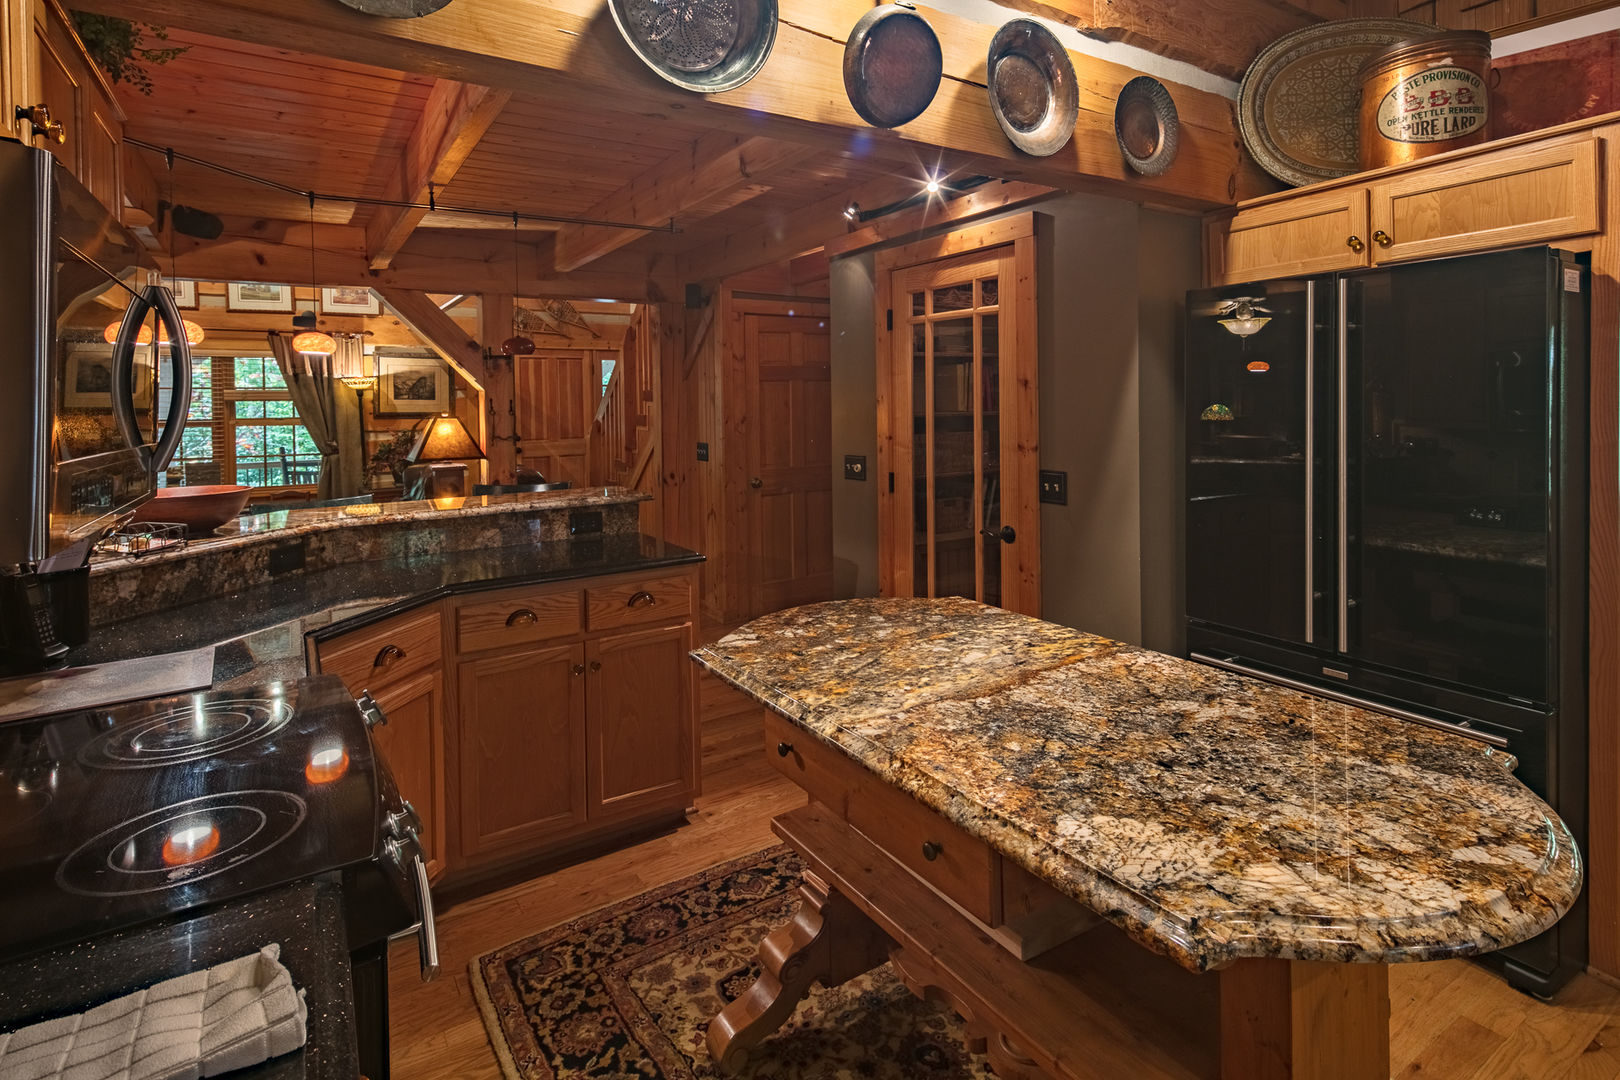 Rich granite counter tops make clean up easy at Almost Perfect in Blowing Rock, NC.